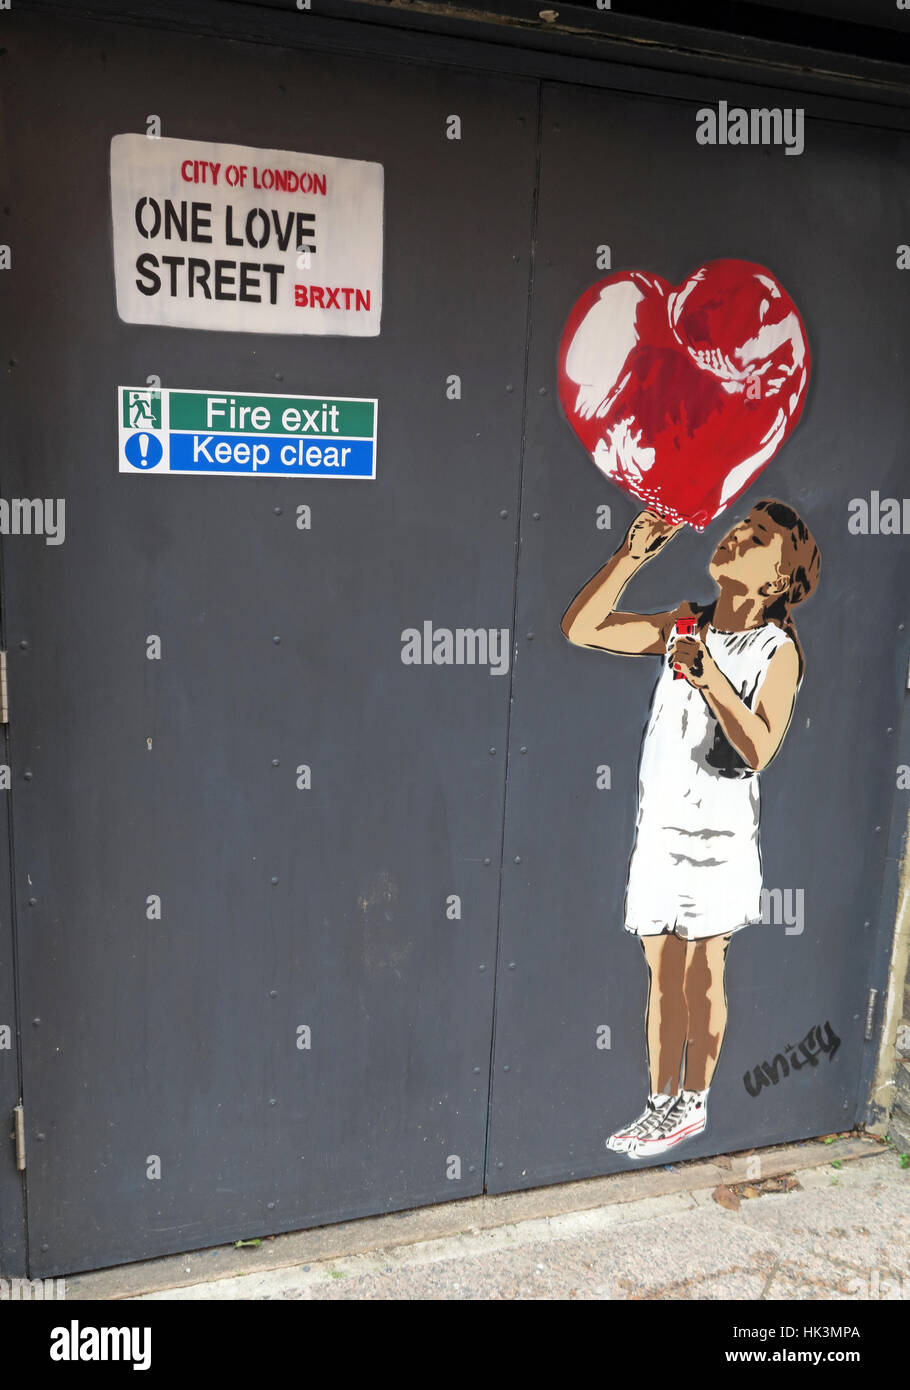 Brixton,England,UK,Bellefields,Road,city,centre,One,love,luv,street,BRXTN,girl,baloon,artwork,art,work,door,fire,exit,city,of,London,Bellefields Road,South London,Brixton London,city centre,One Love street,girl with balloon,City Of London,GoTonySmith,@HotpixUK,Tony,Smith,UK,GB,Great,Britain,United,Kingdom,English,London,Cockney,Cockneys,England,LDN,British,England,problem,with,problem with,issue with,art,artist,clever,fun,capital,city,Buy Pictures of,Buy Images Of,Images of,Stock Images,Tony Smith,United Kingdom,Great Britain,British Isles,South London,Capital city